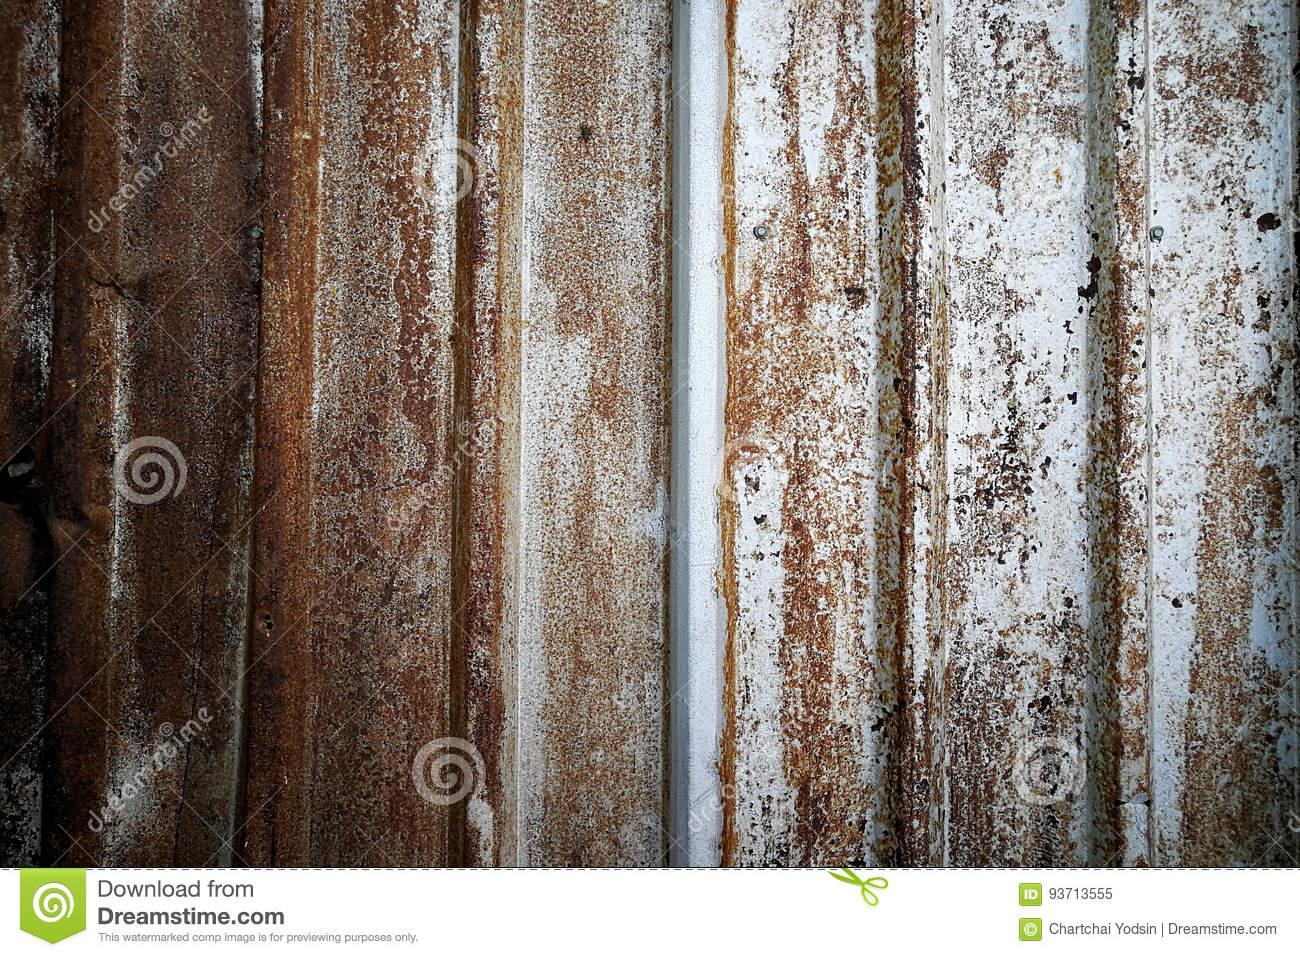 Background of Rusted metal wall, Vintage texture